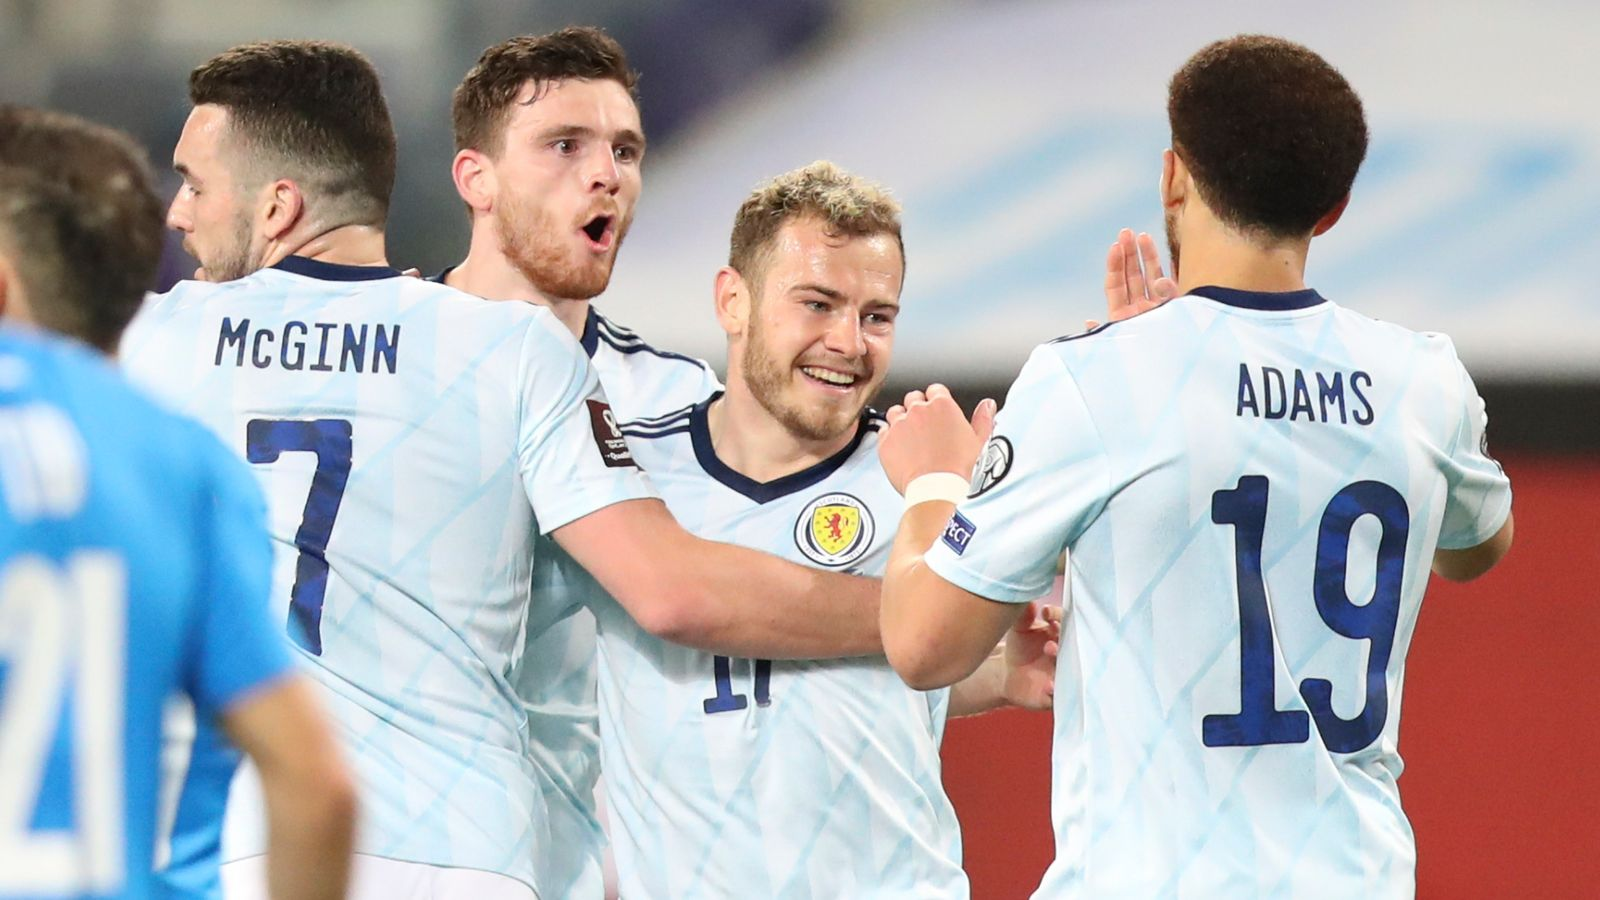 2022 World Cup qualifying preview: Scotland, Northern Ireland, England in action